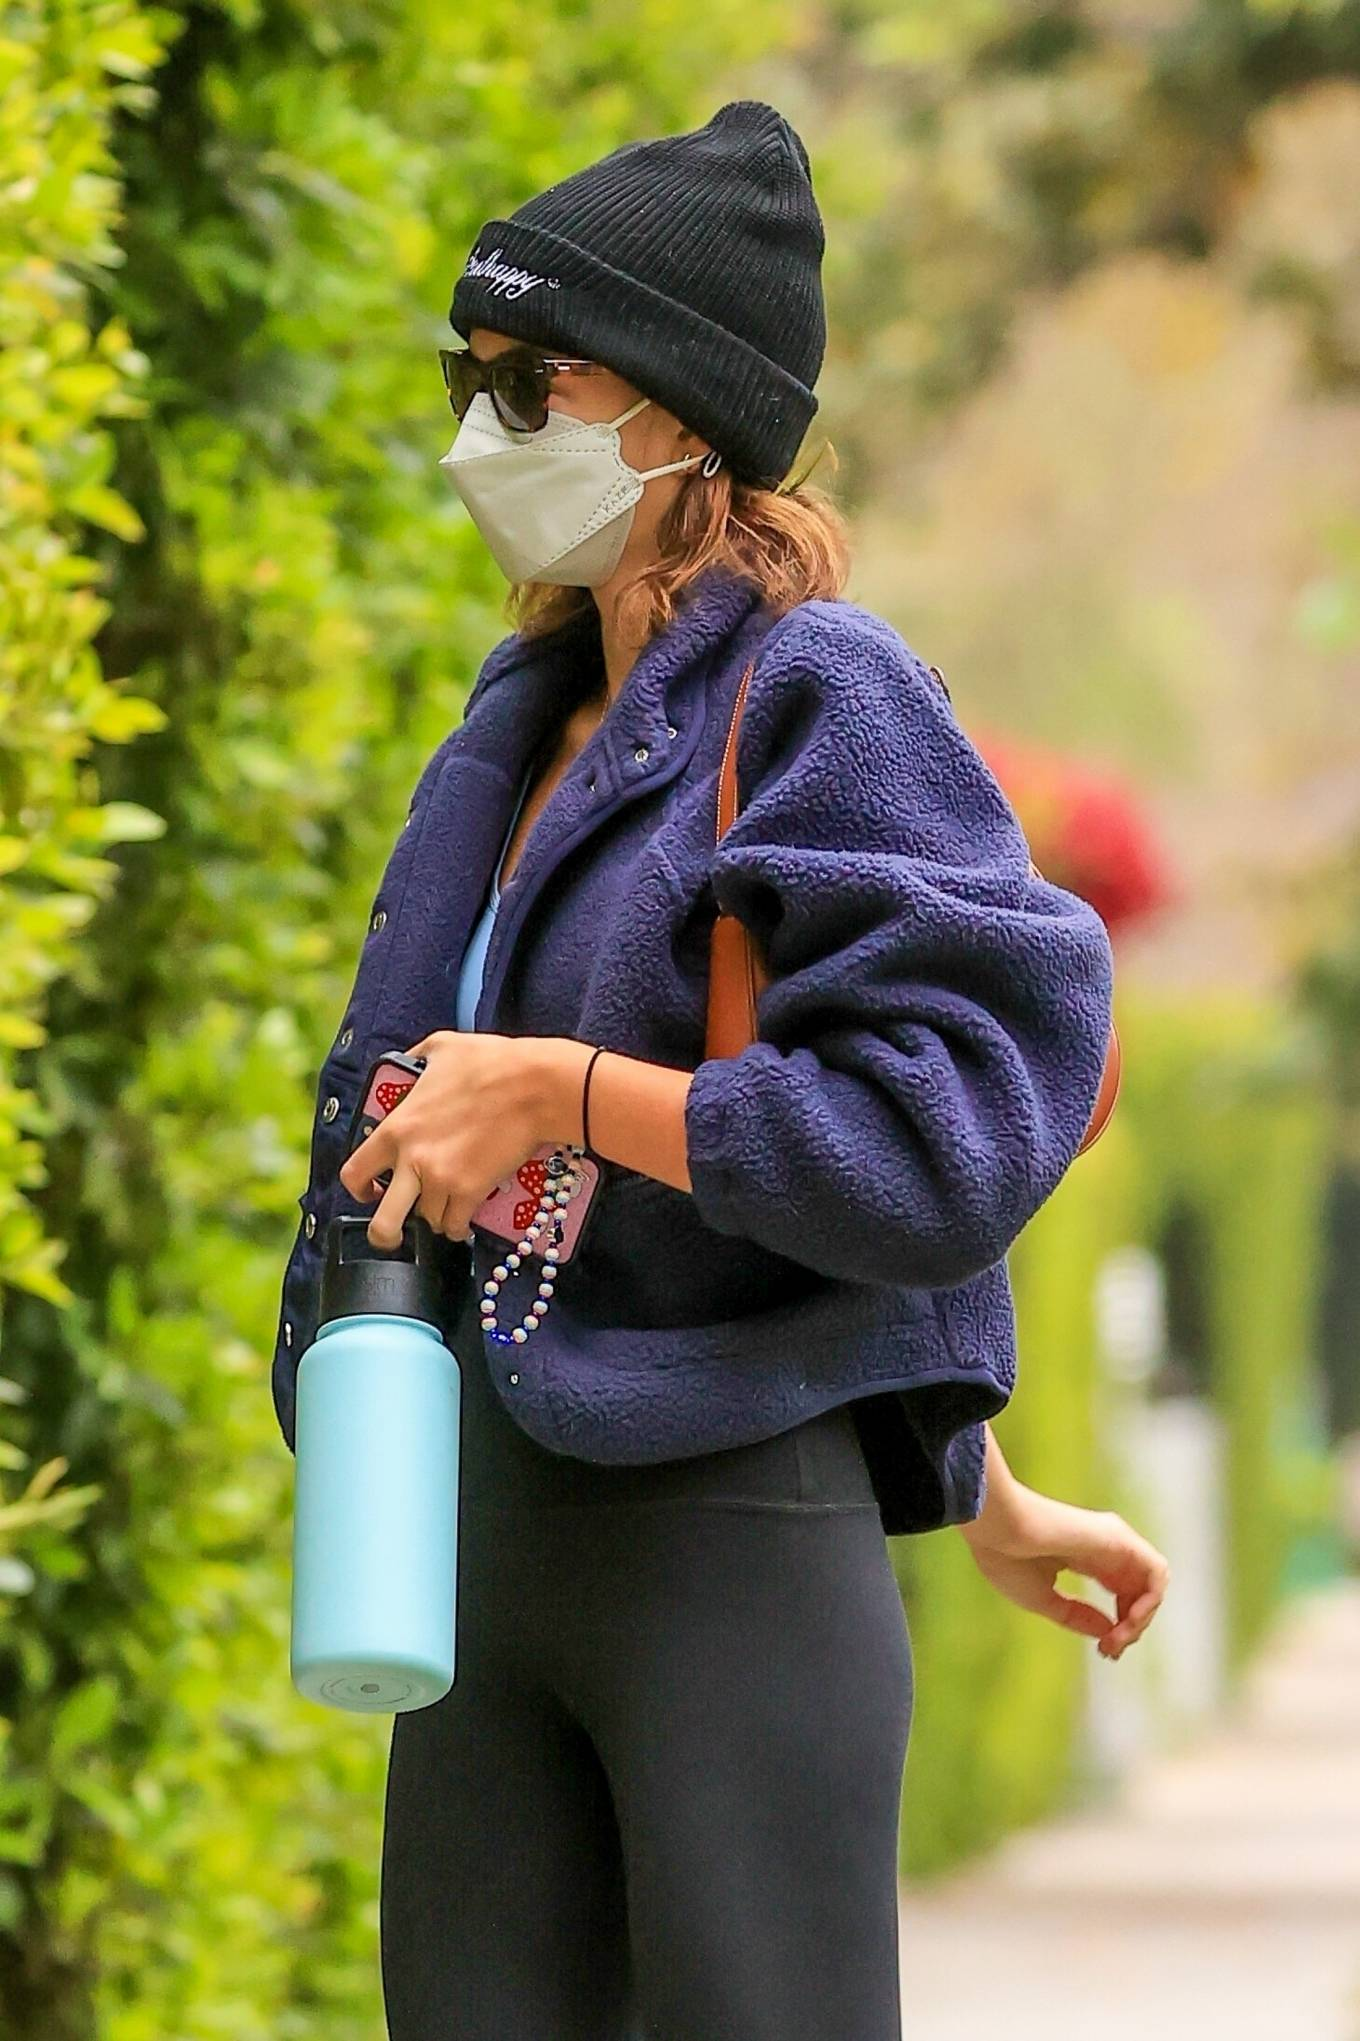 Kaia Gerber rocking a oversized navy blue open front Jacket with a fleece material, full sleeves, stand-up collar and zip pockets